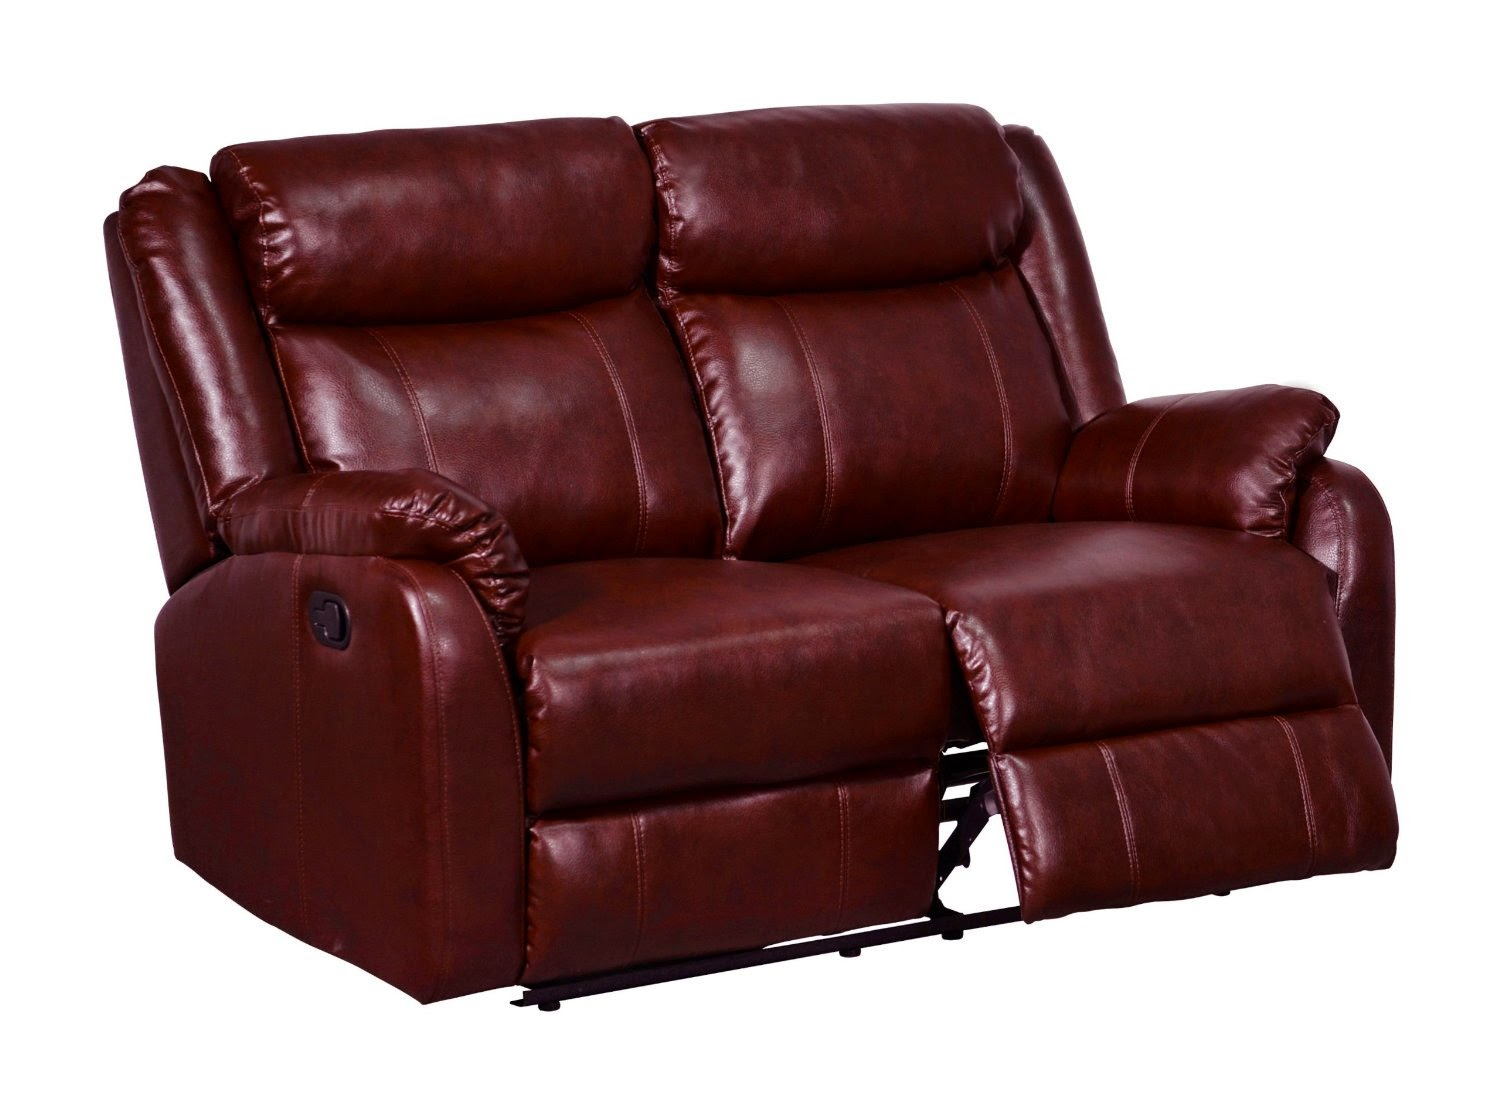 Cheap reclining sofas sale 2 seater leather recliner sofa sale Leather sofa and loveseat recliner